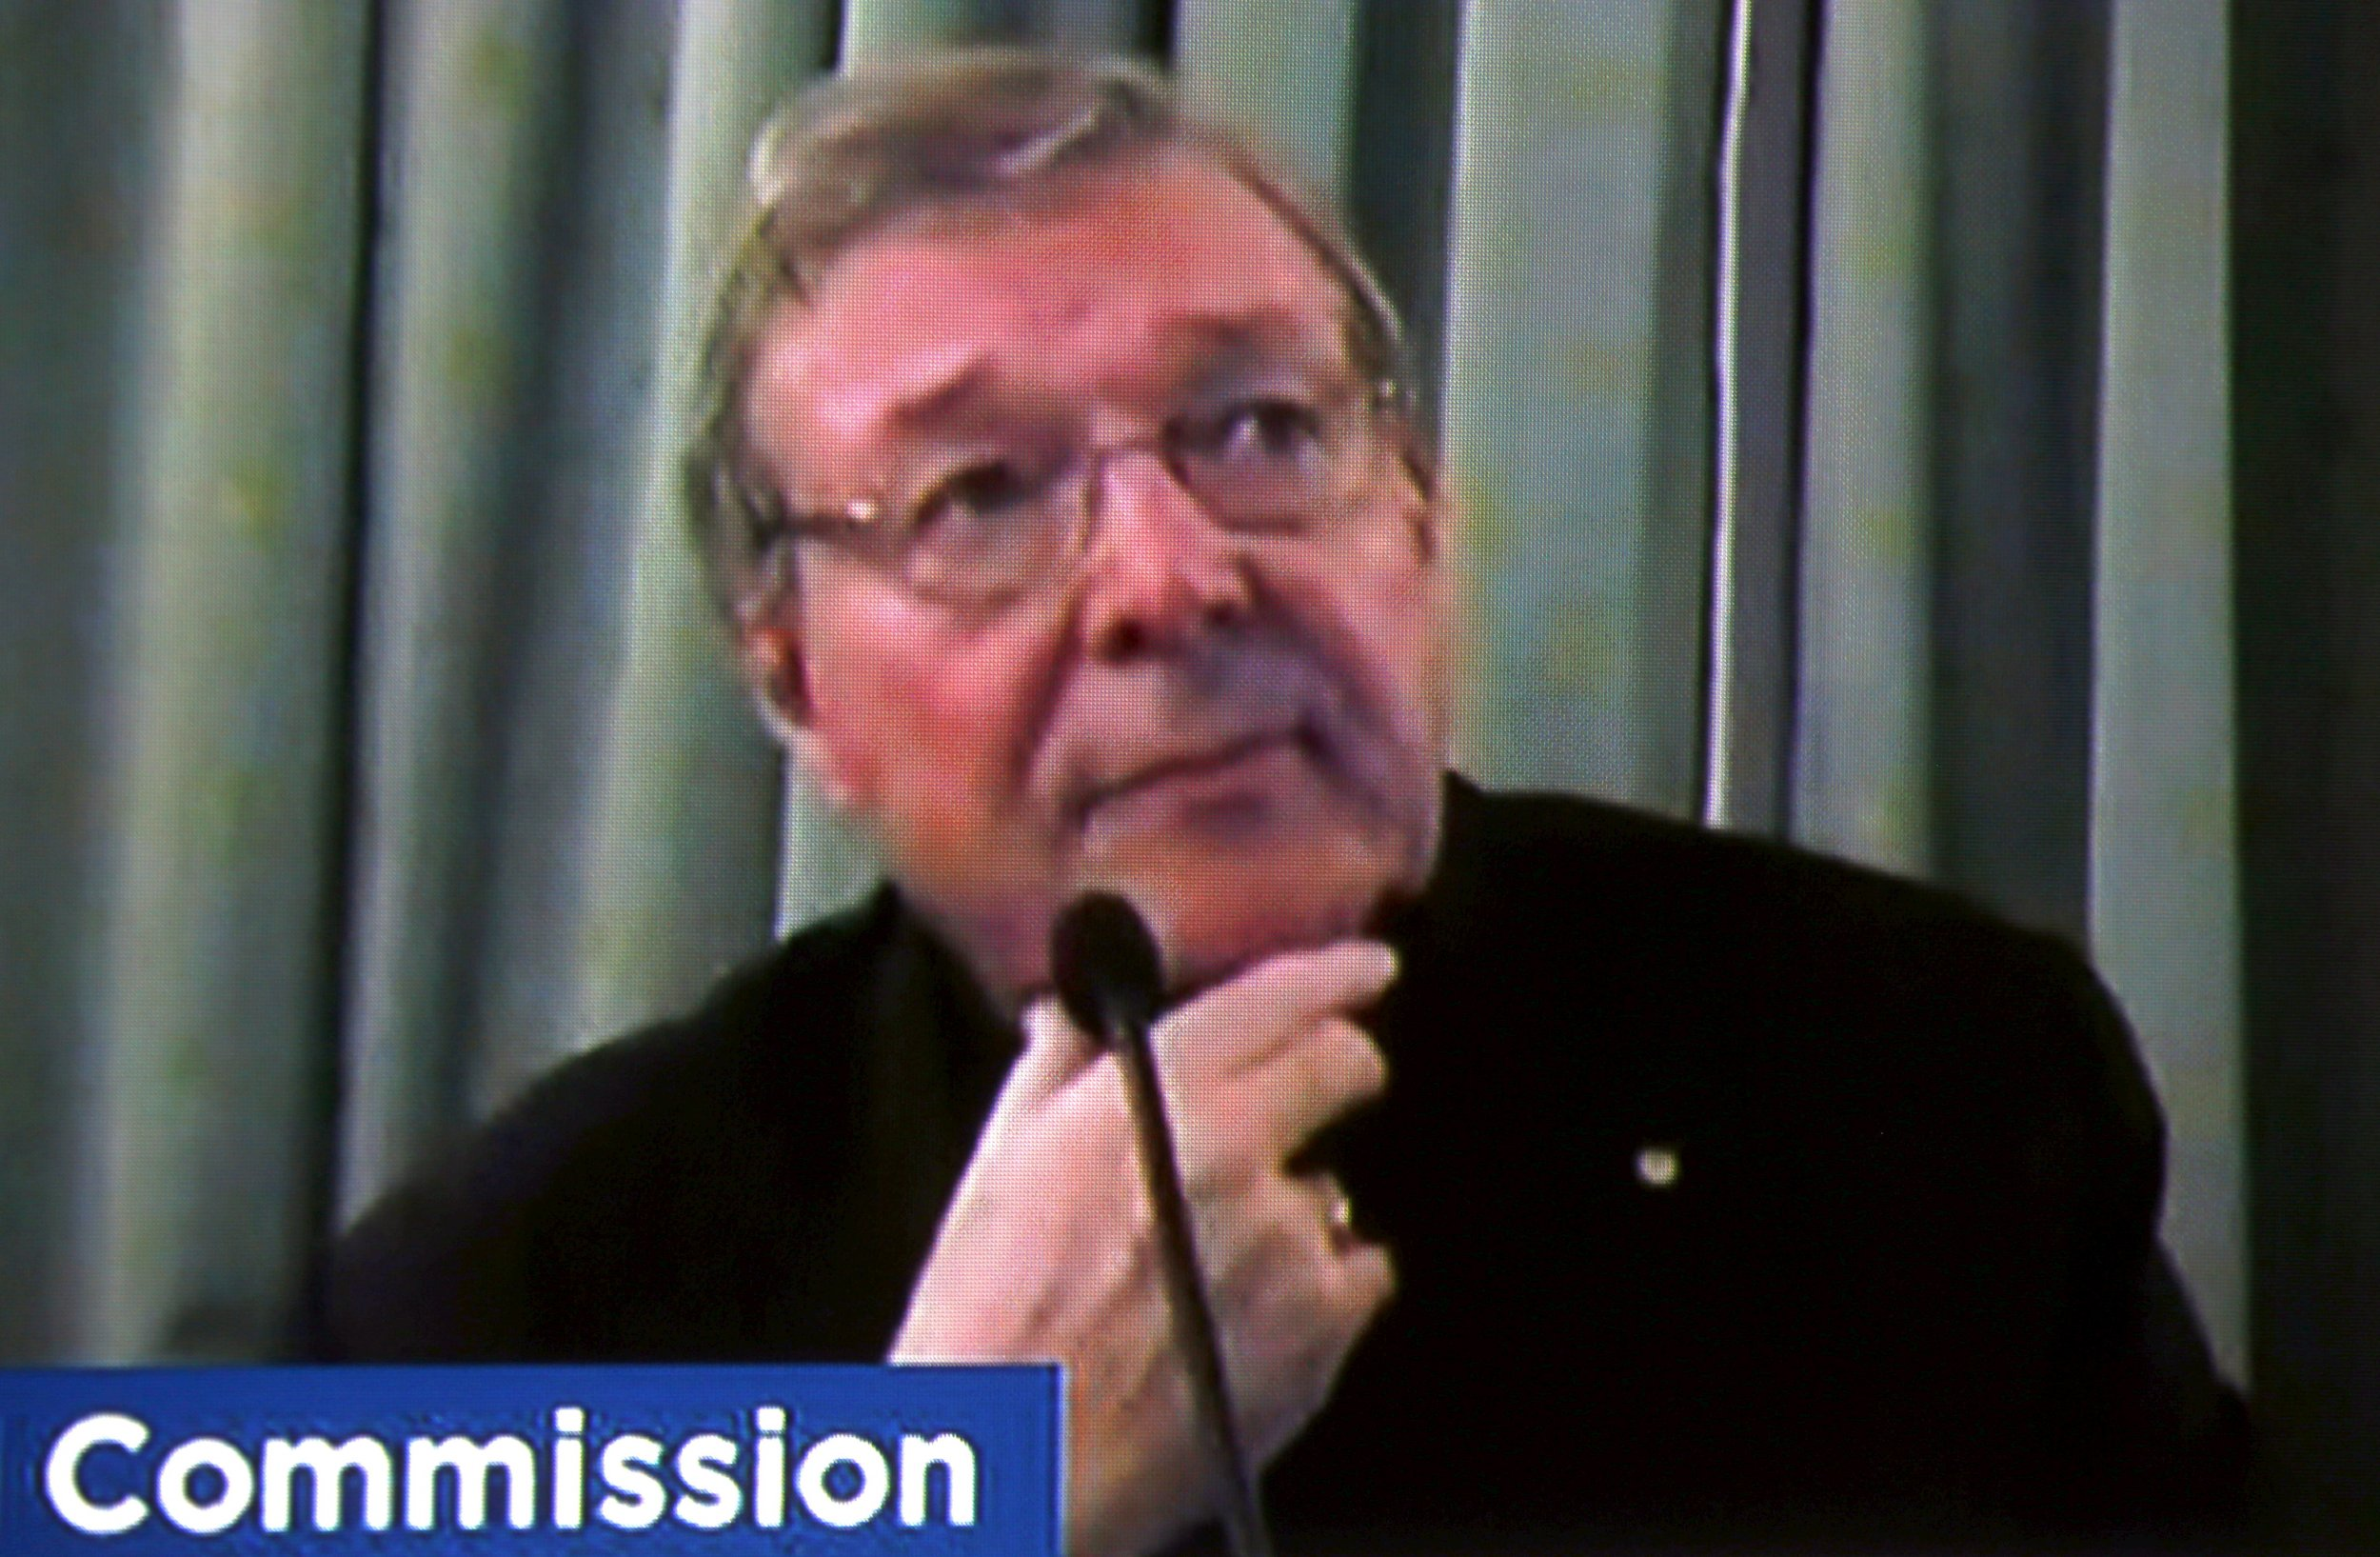 Cardinal George Pell testifies via video link in an Australian child abuse inquiry.